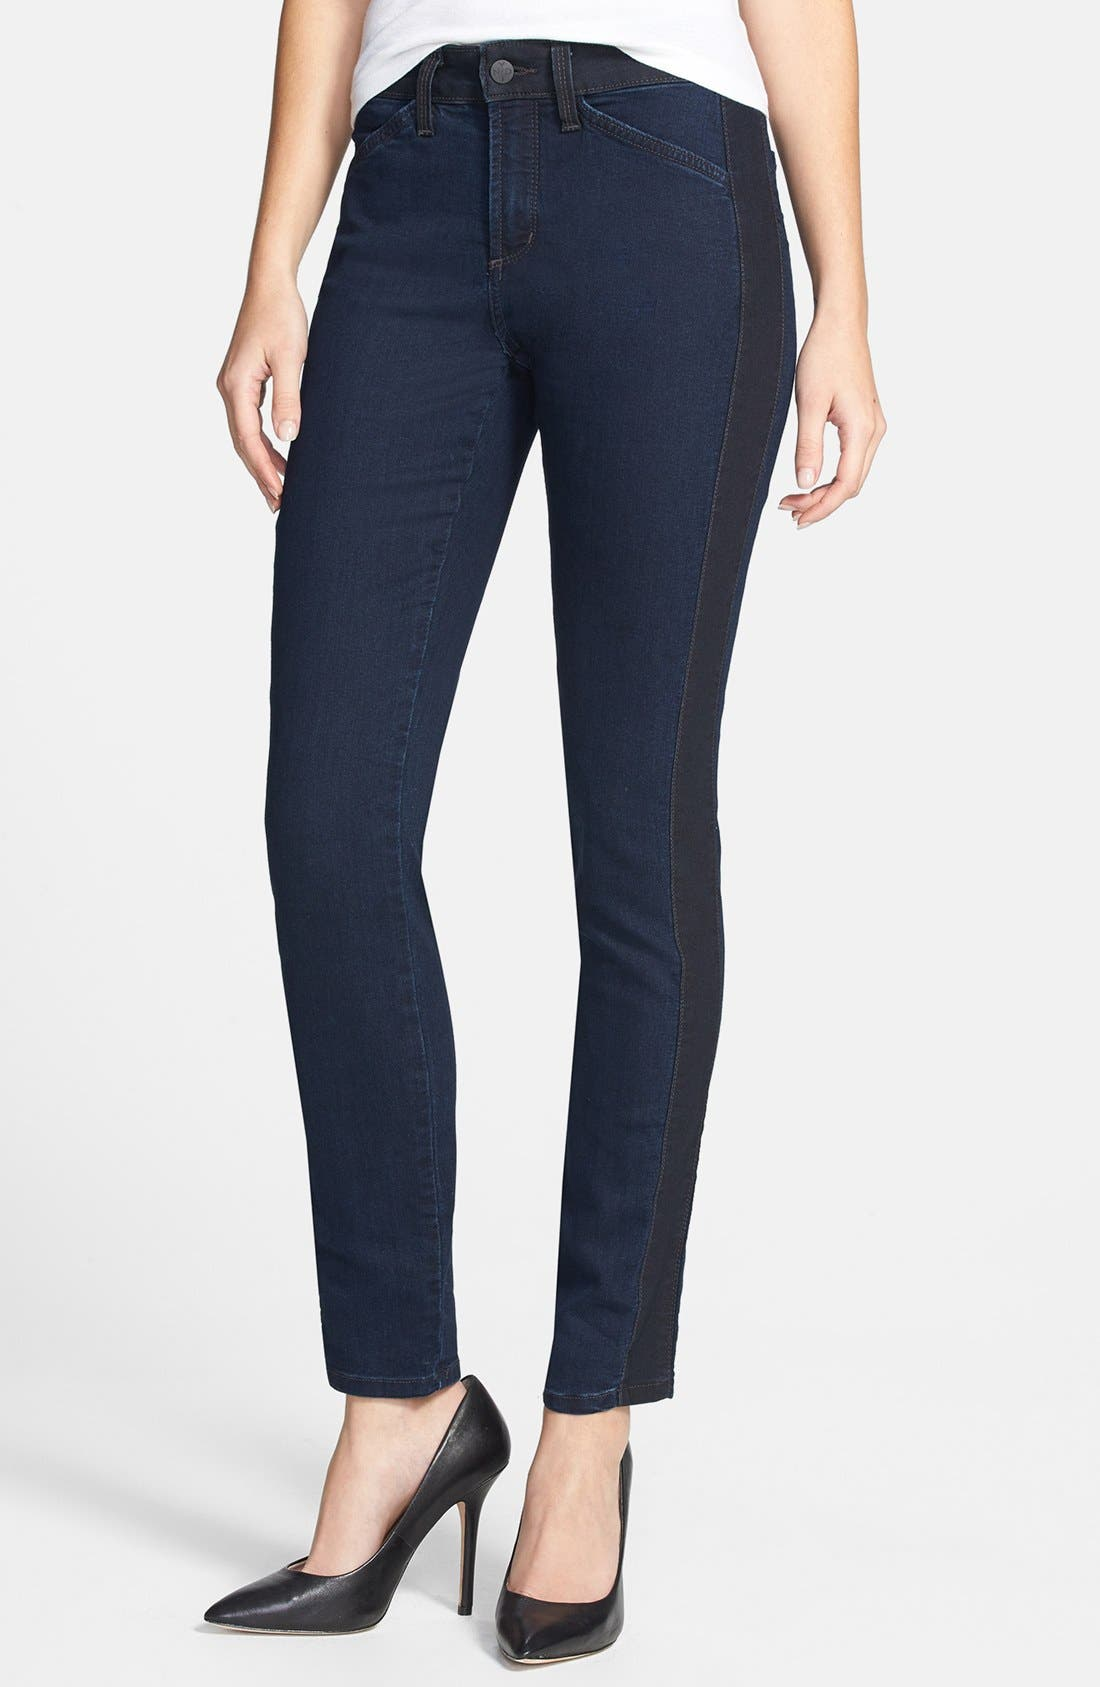 Alternate Image 1 Selected - NYDJ 'Alexandra' Tuxedo Stripe Stretch Skinny Jeans (Covina)